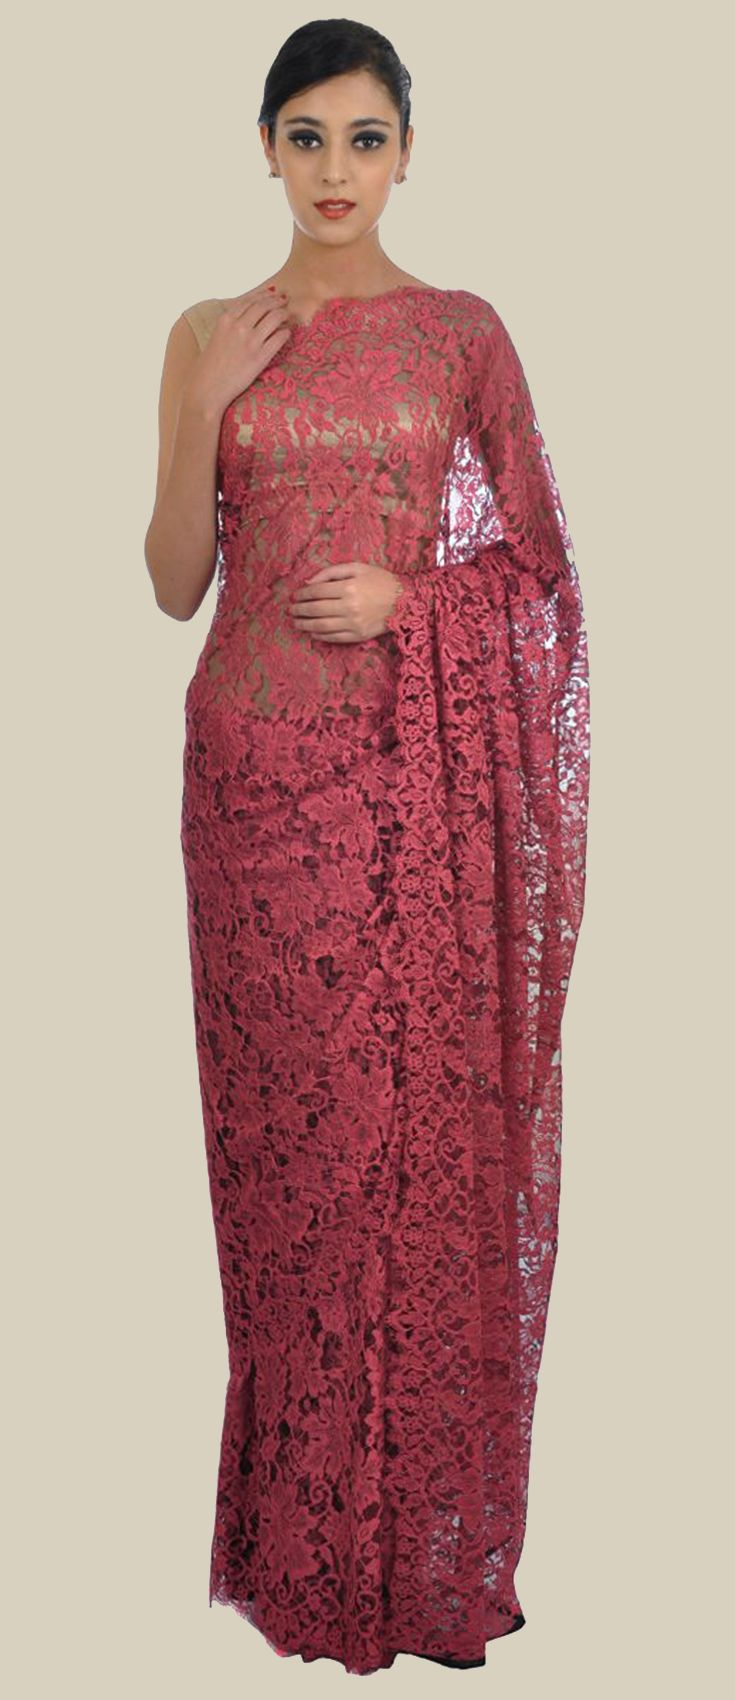 Cherry Red French Chantilly Lace Saree With Crepe-Tissue Blouse